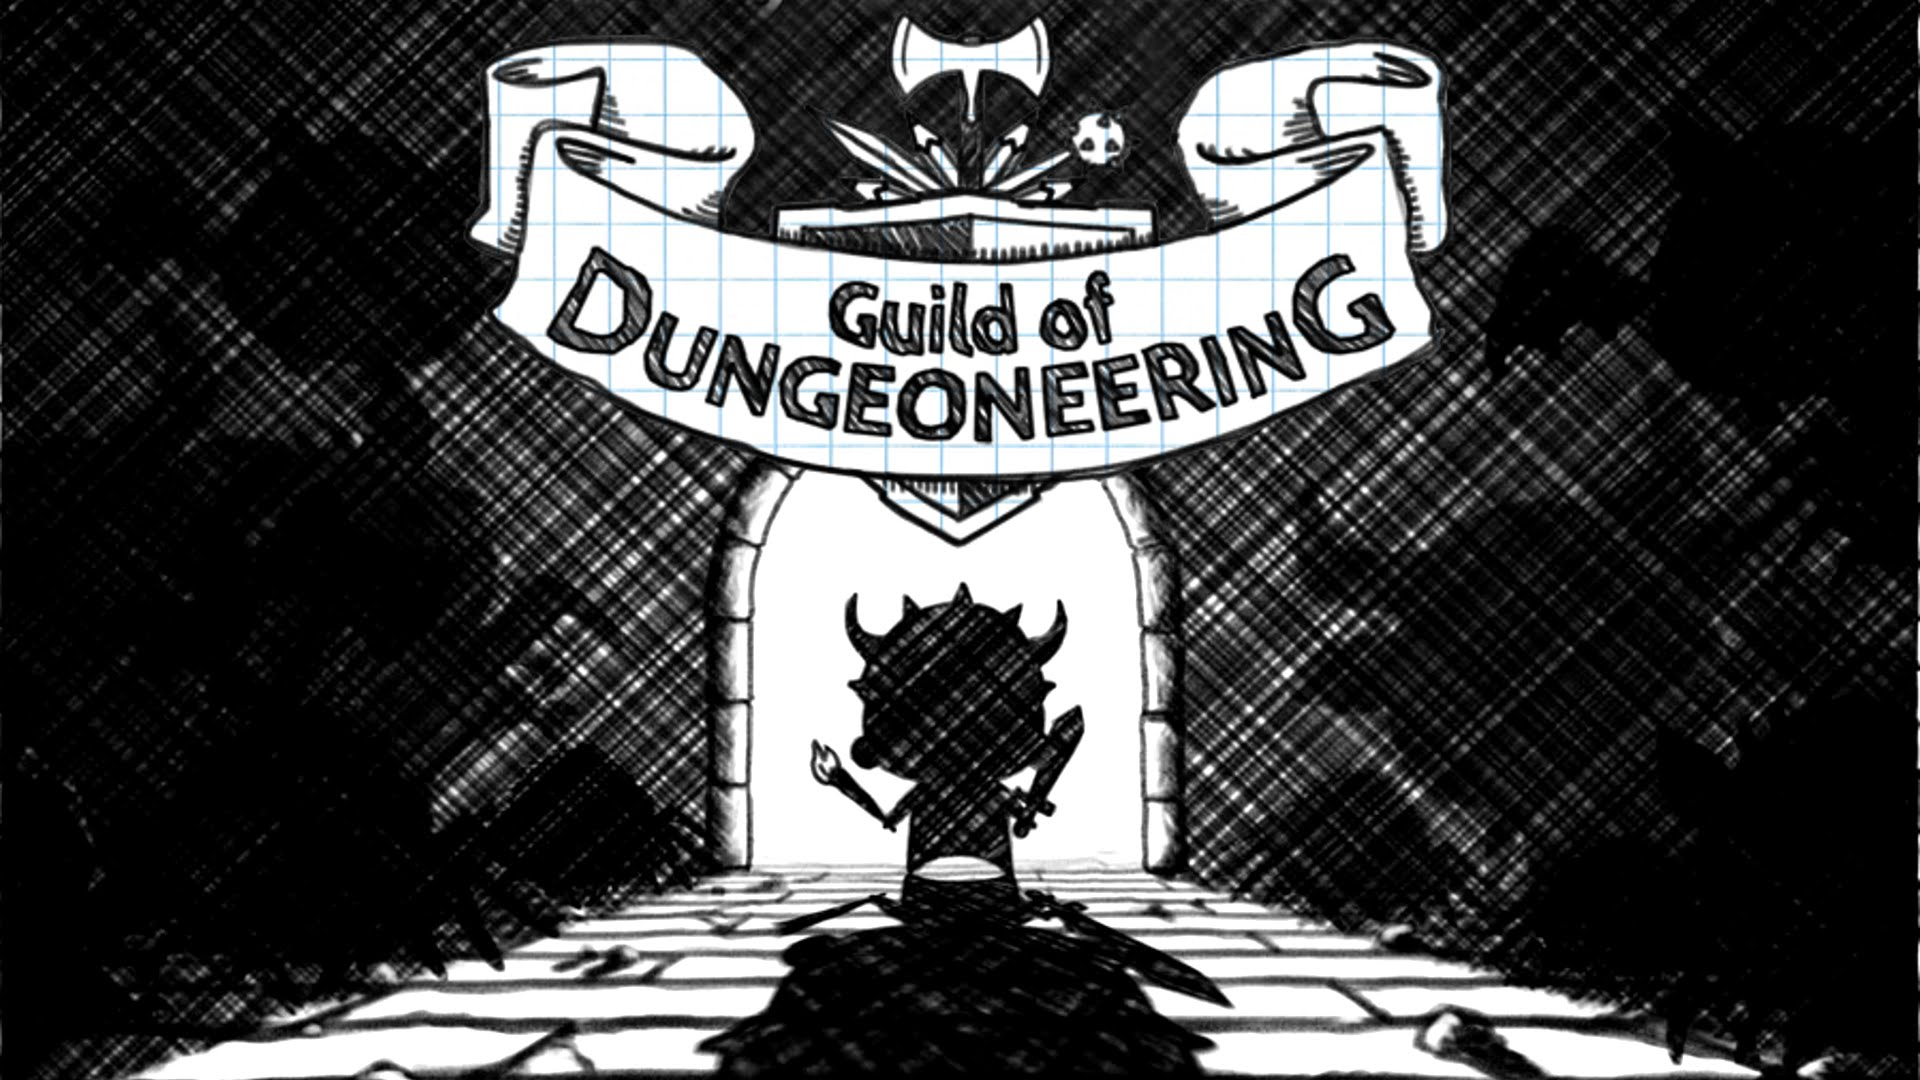 Guild of Dungeoneering header